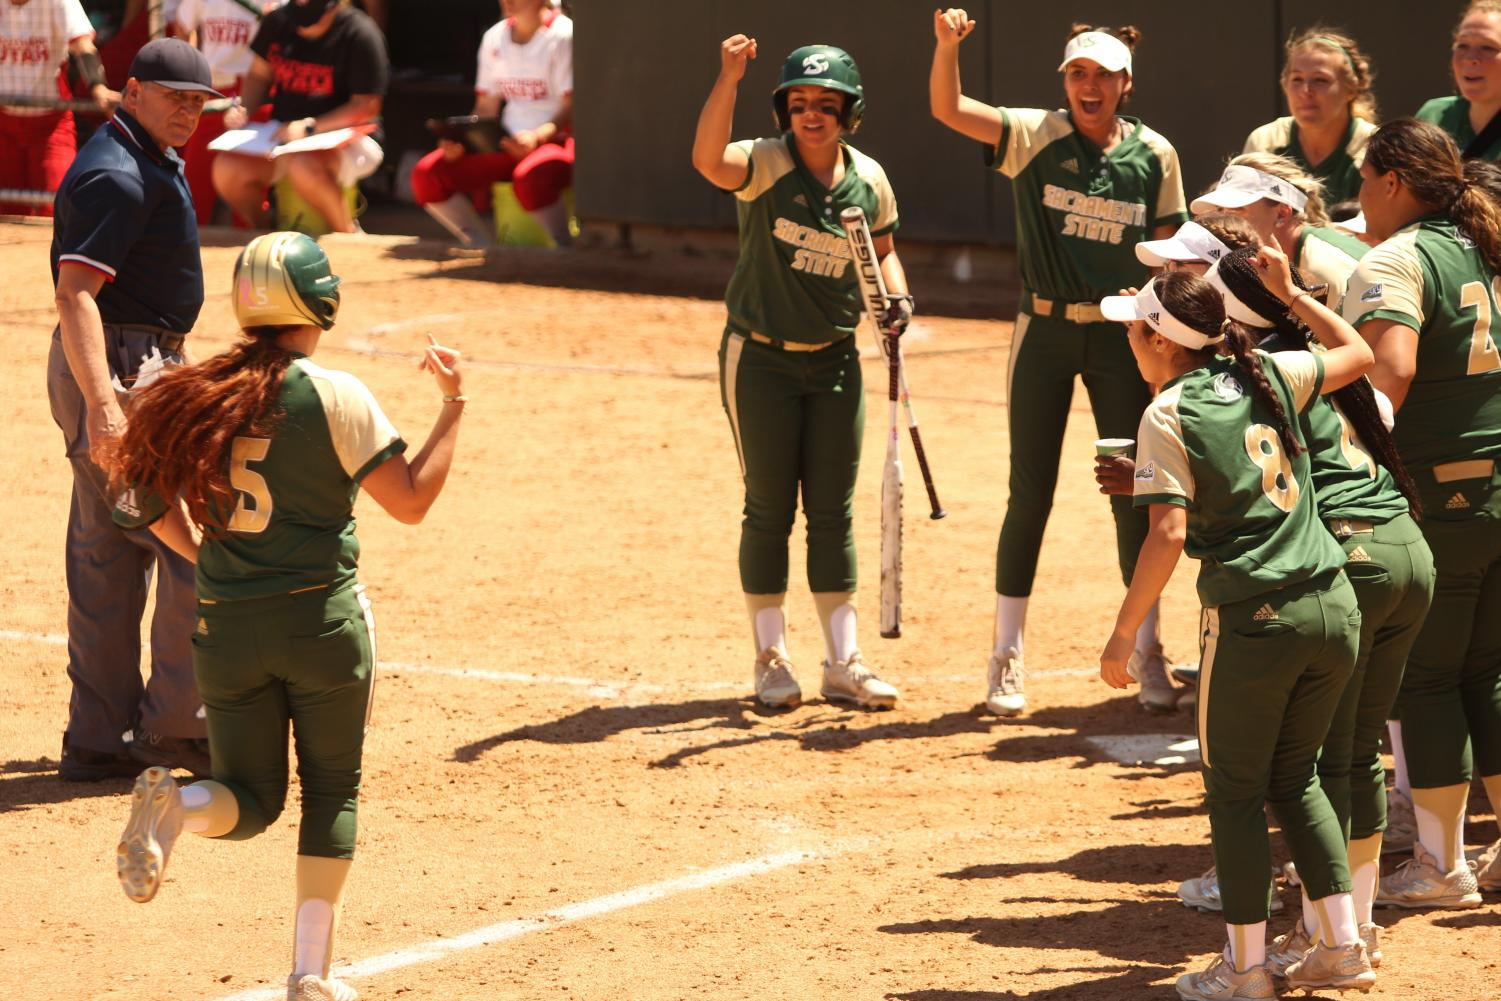 Sacramento State sophomore outfielder Suzy Brookshire and her teammates perform the University's signature